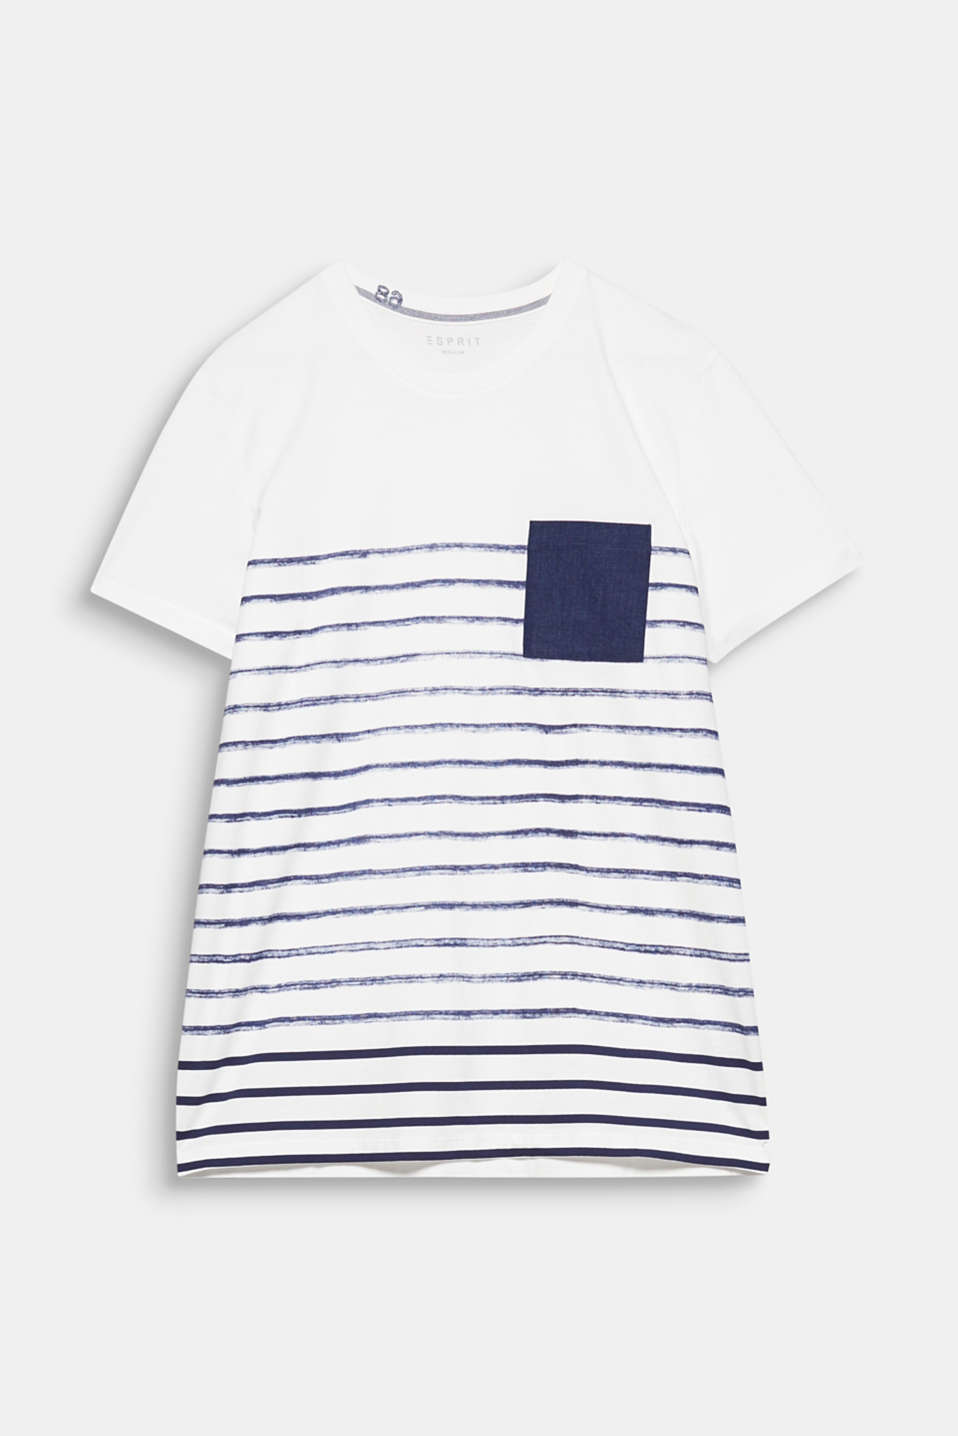 The patch breast pocket in a denim style and stripes in a DIY look give this top its urban look.